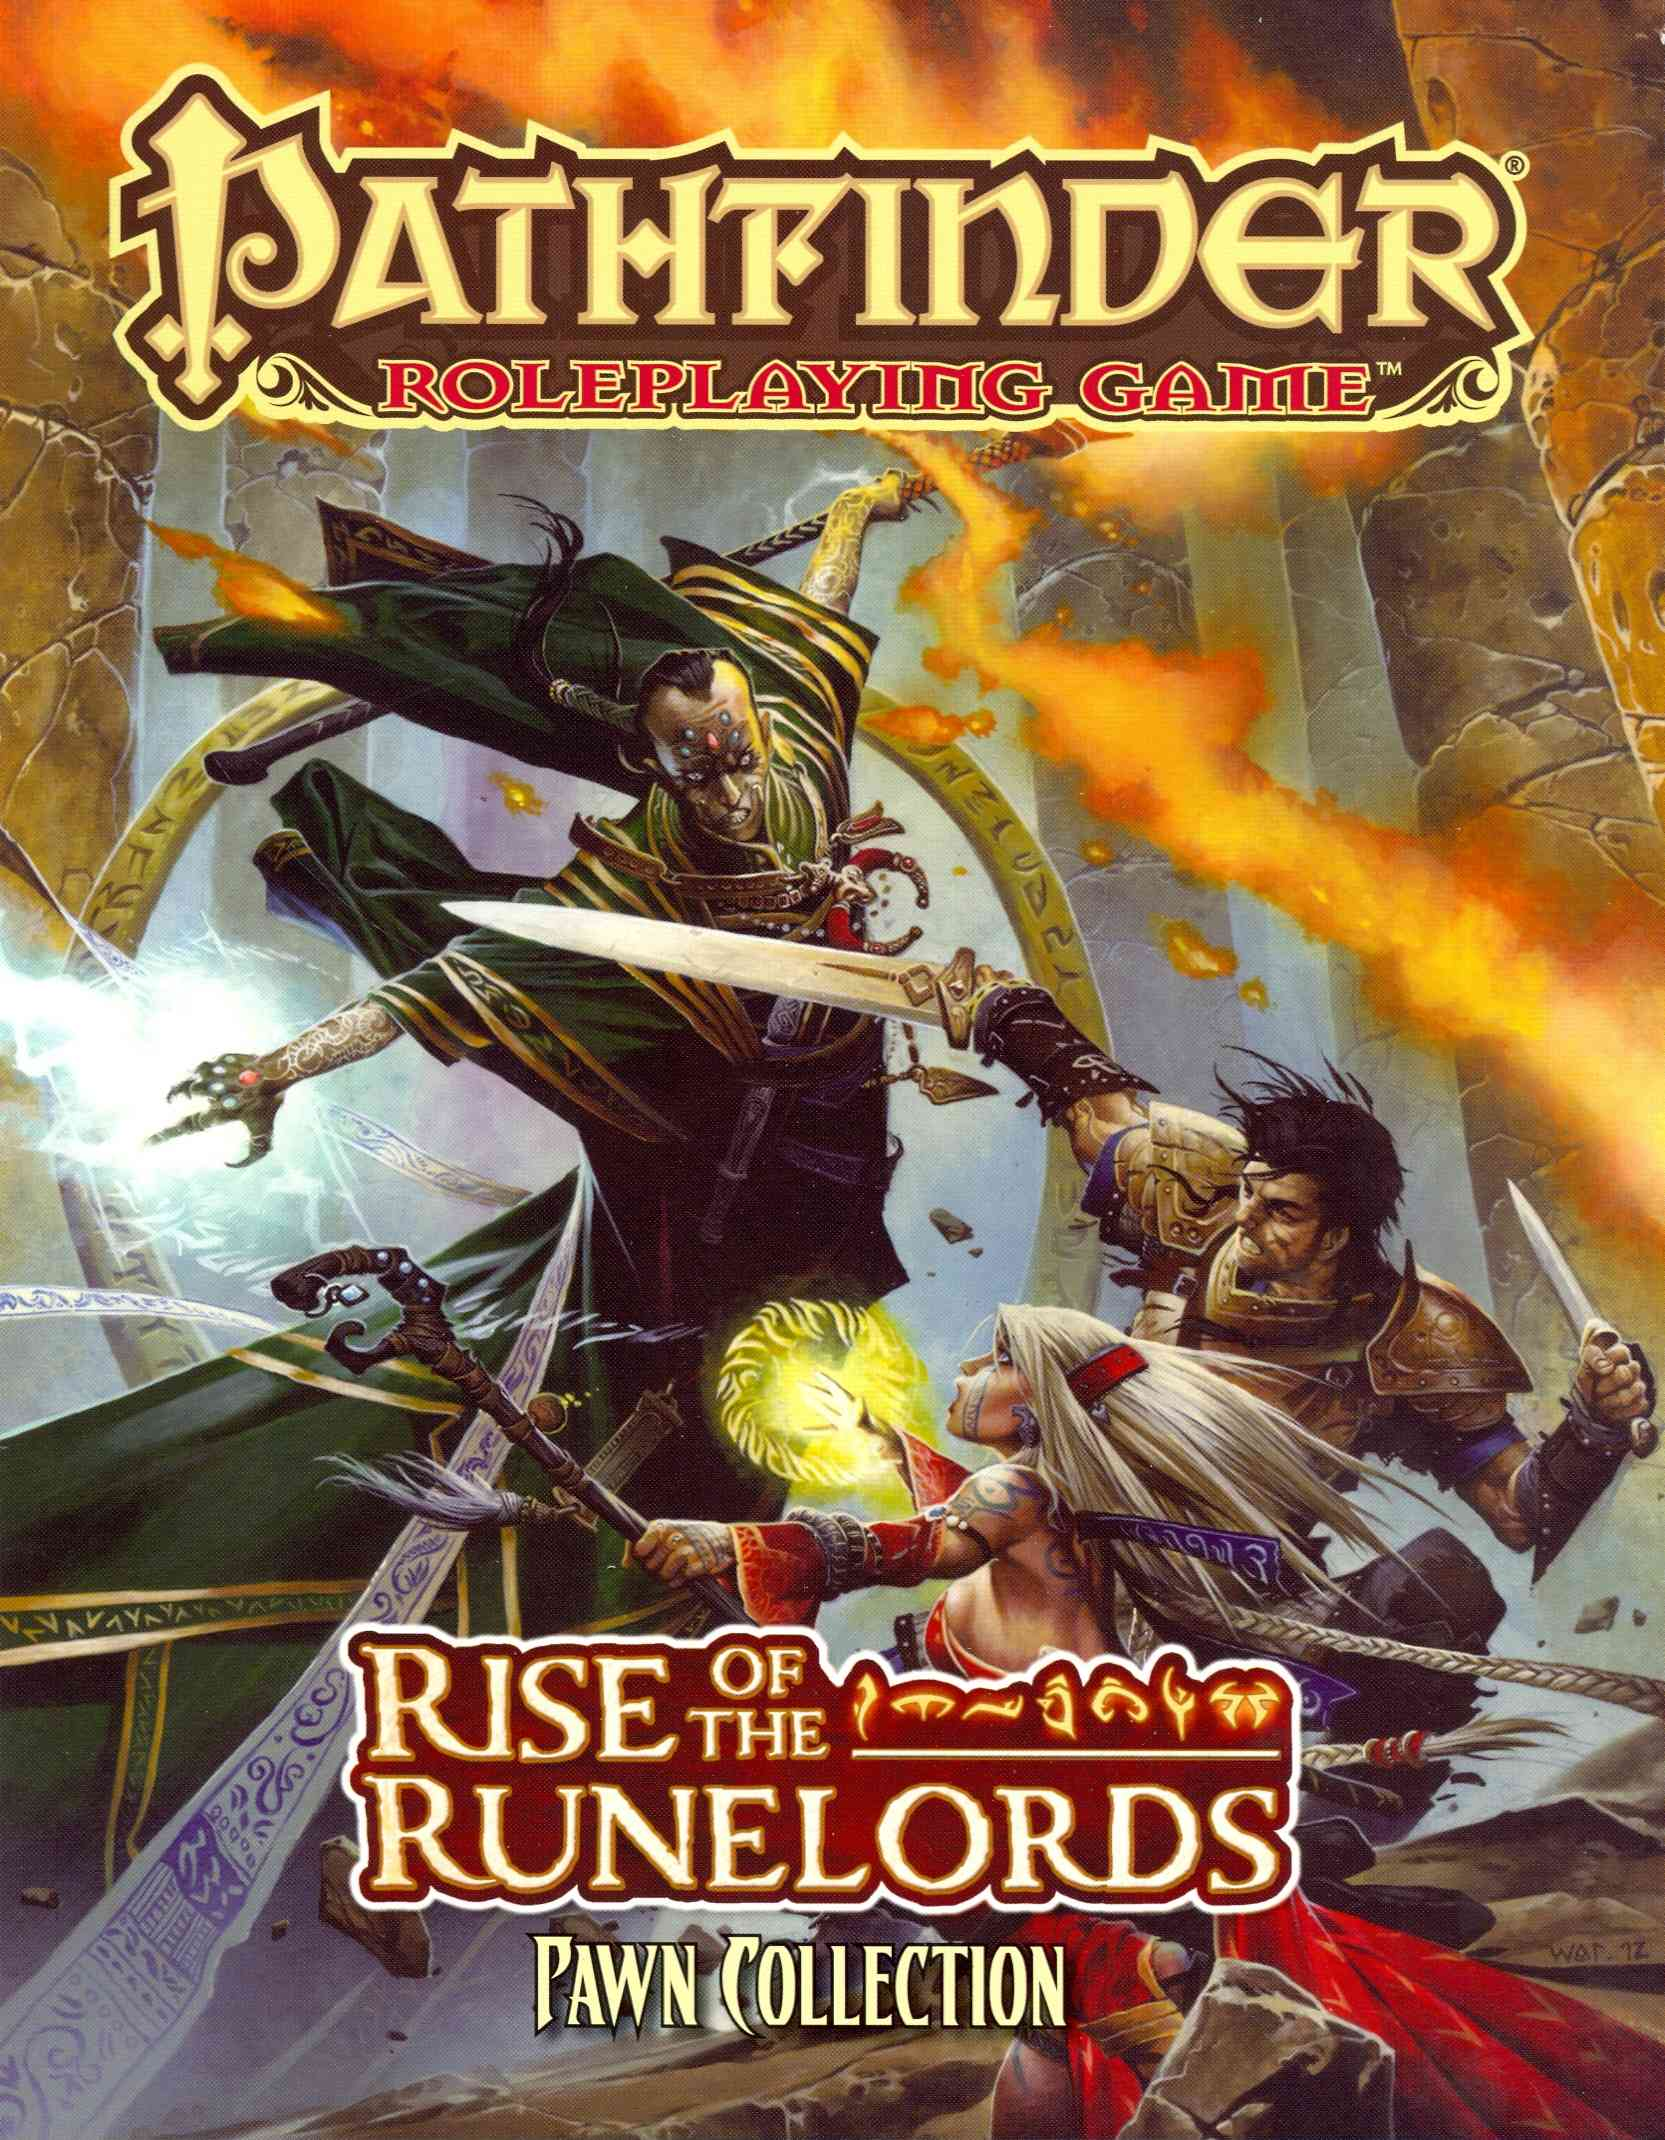 Pathfinder Roleplaying Game: Rise of the Runelords Pawn Collection (Hardcover)